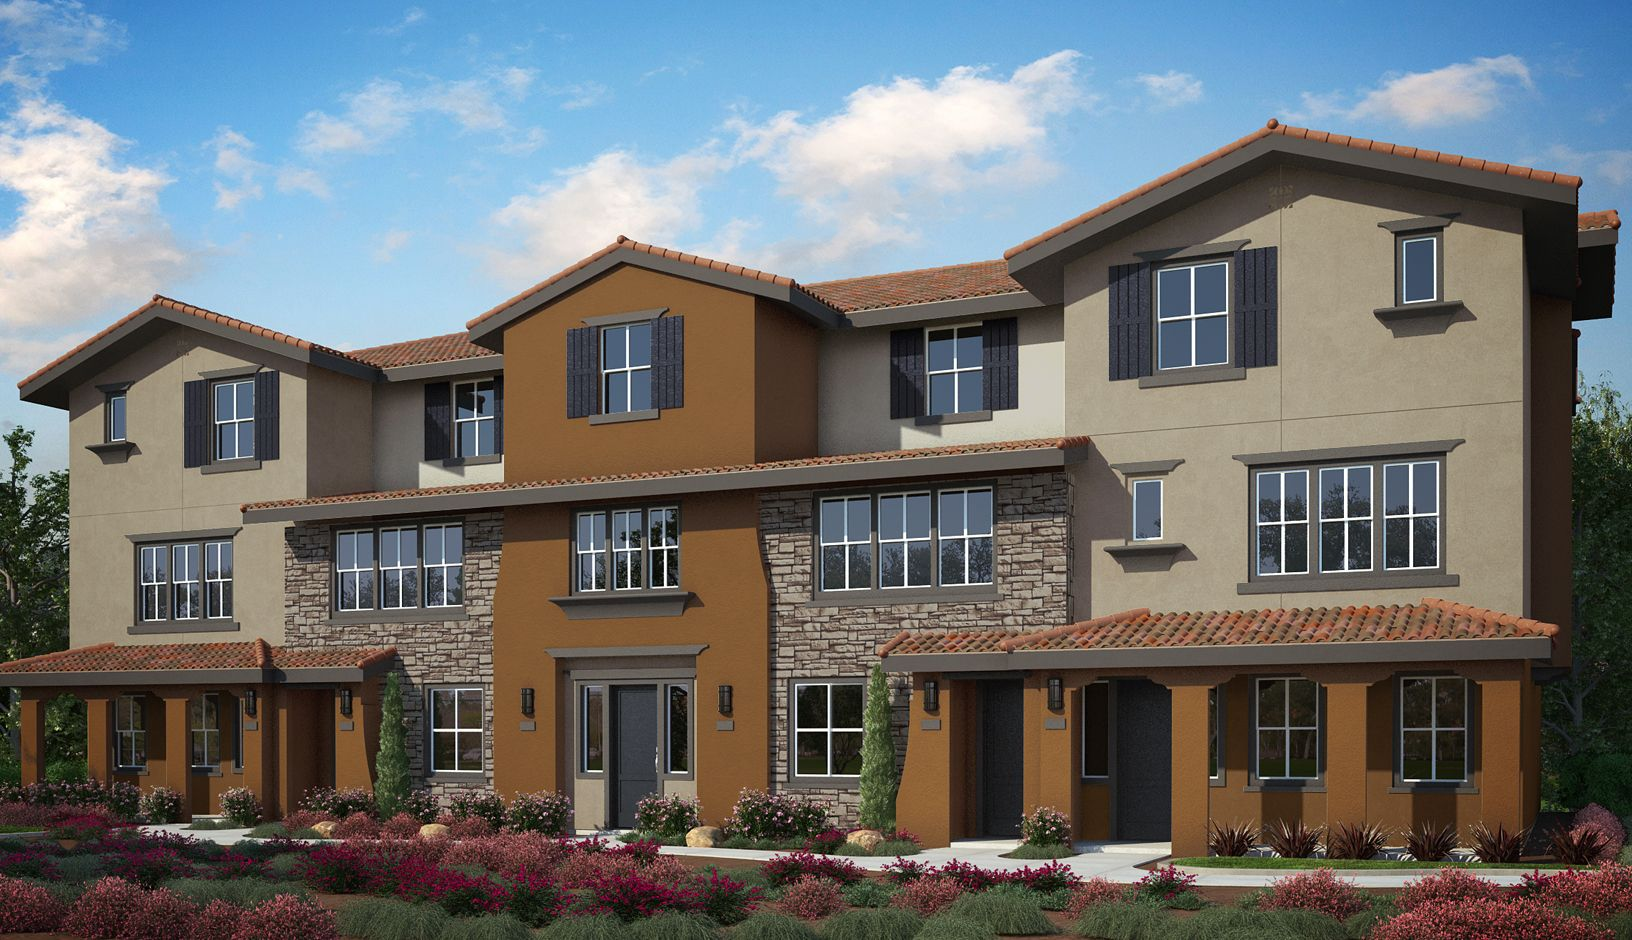 TRI Pointe Homes will debut the sophisticated condostyle